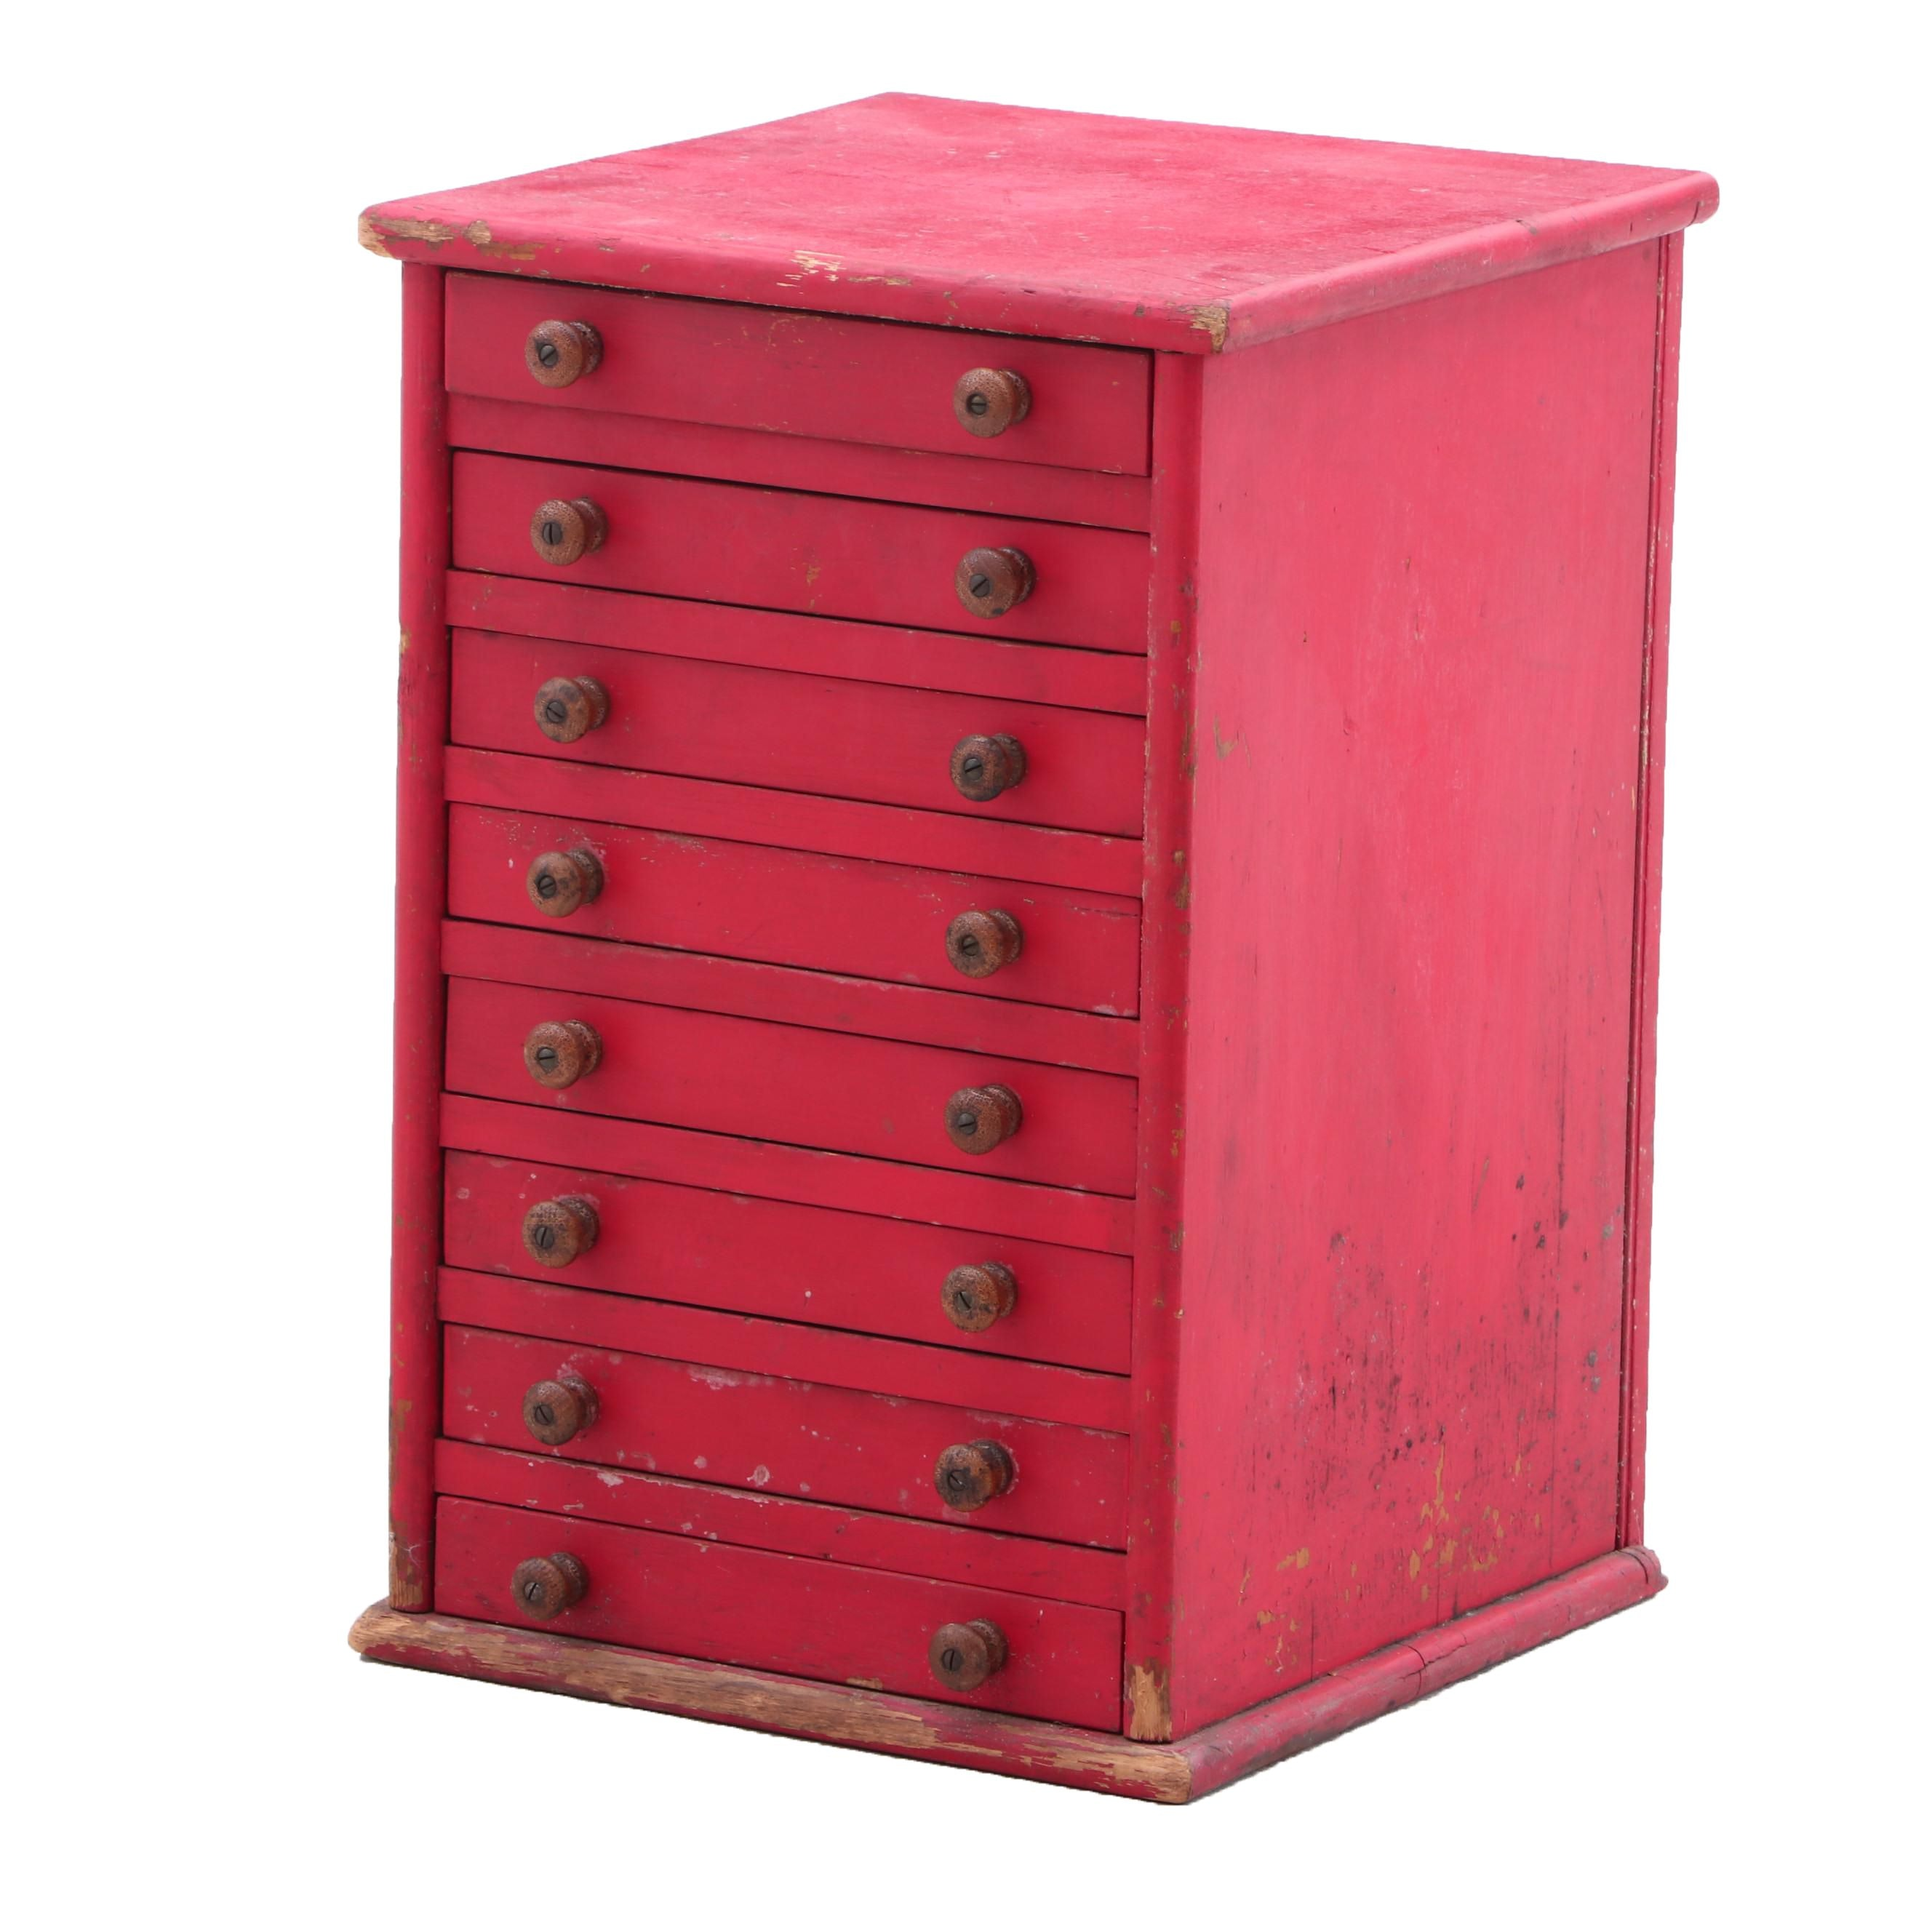 Vintage Machinist's Tabletop Chest of Drawers